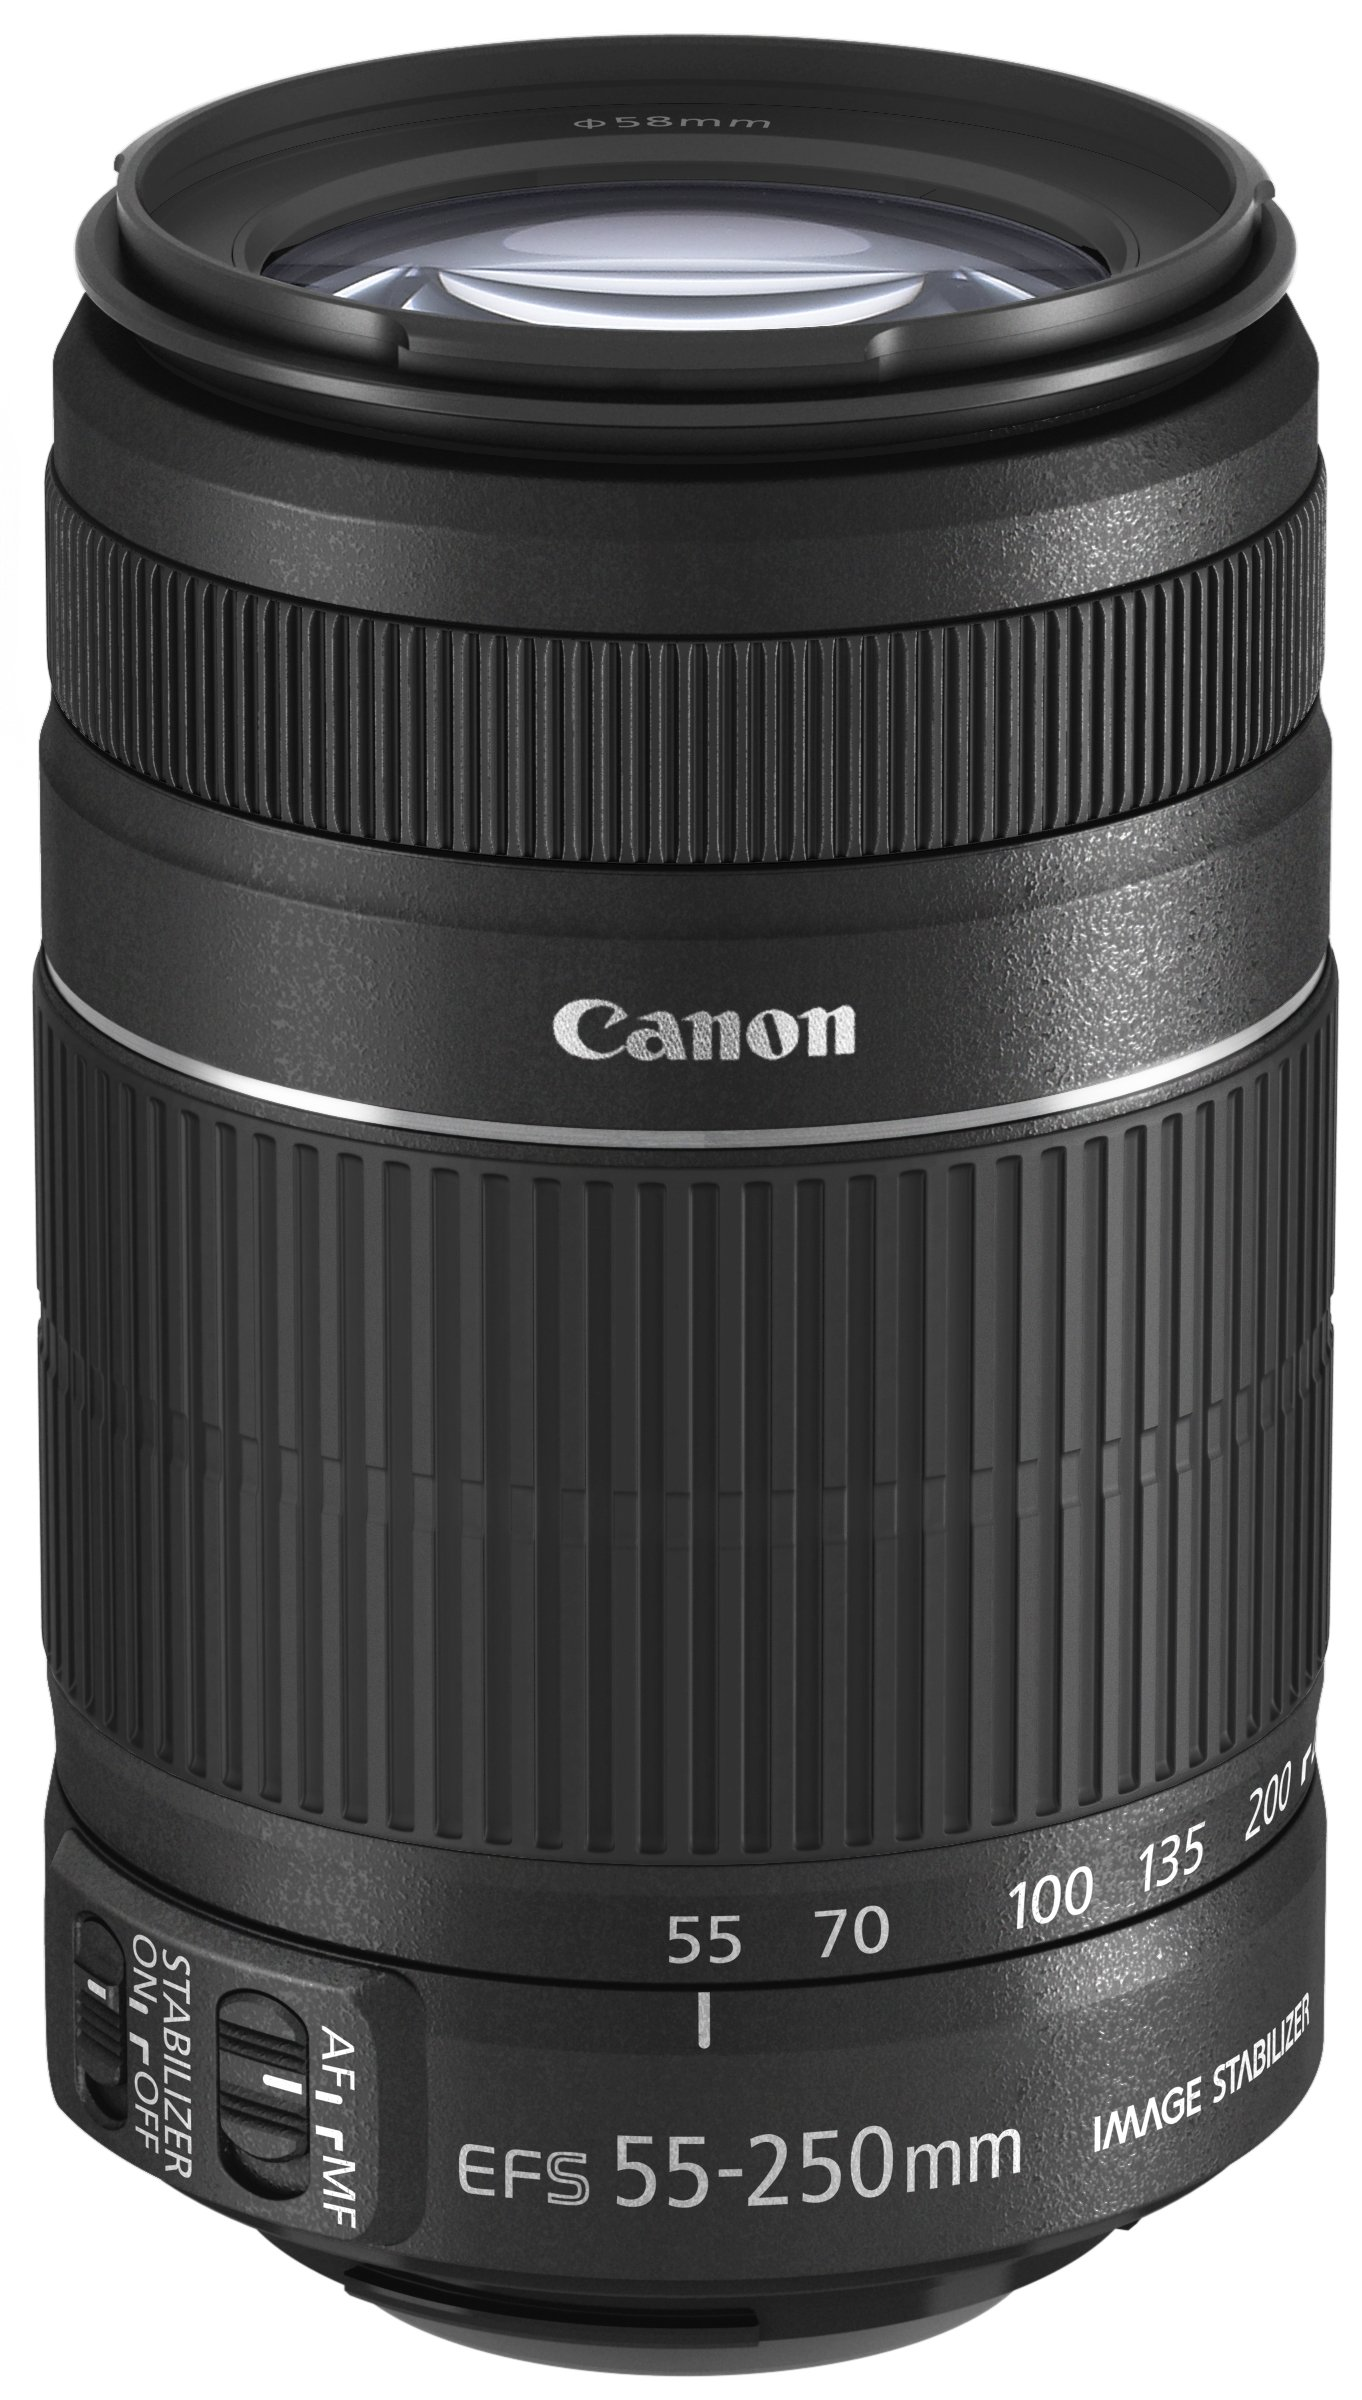 Canon-EF-S-55-250mm-f4-56-IS-II-Telephoto-Zoom-Lens-for-DSLR-Camera-Black